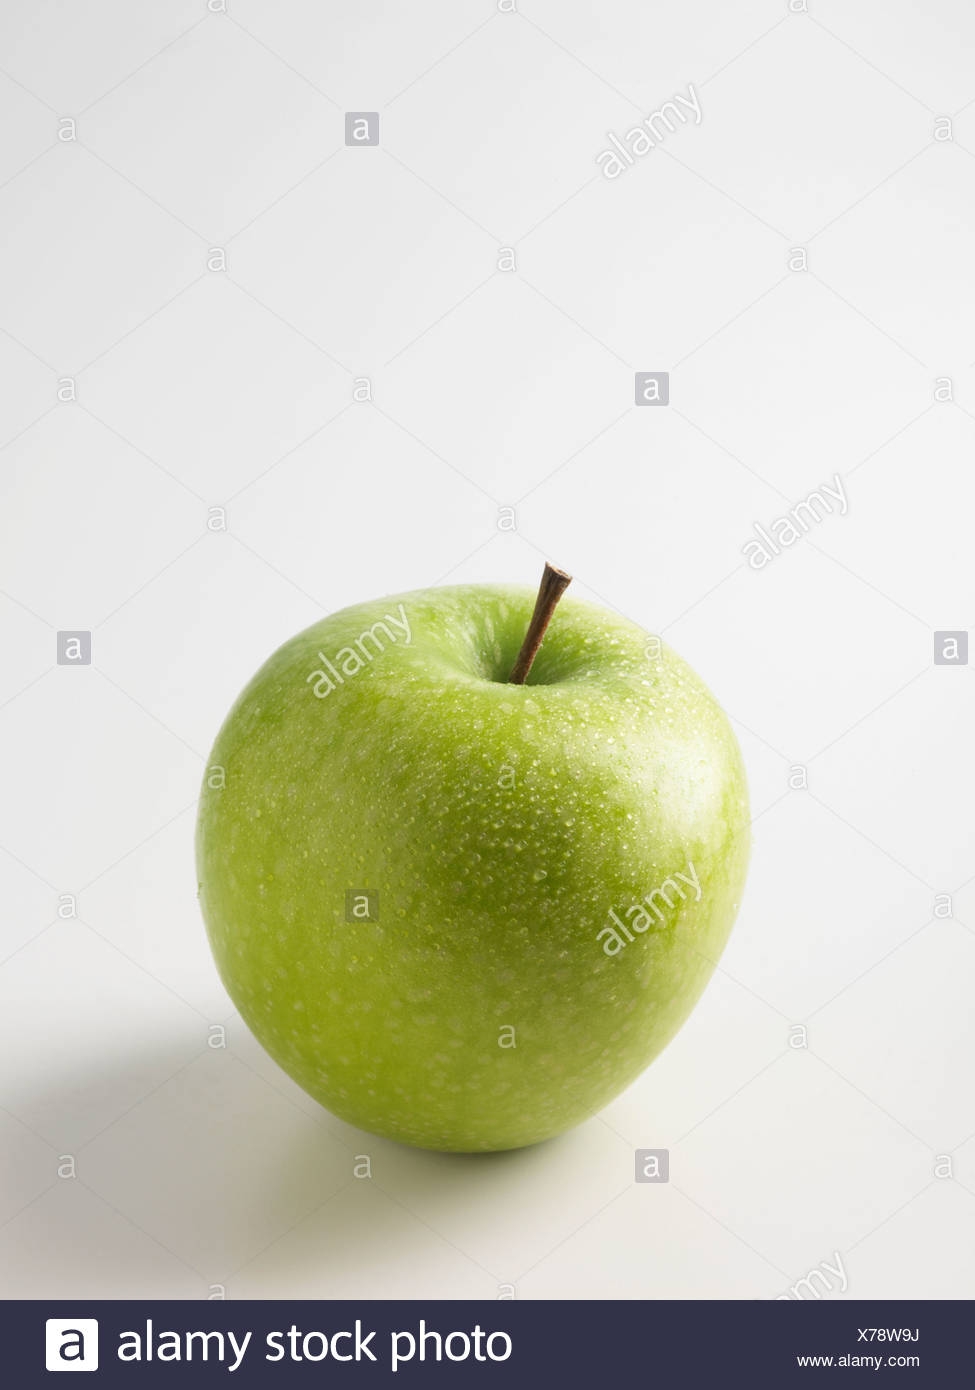 Close up of green apple - Stock Image